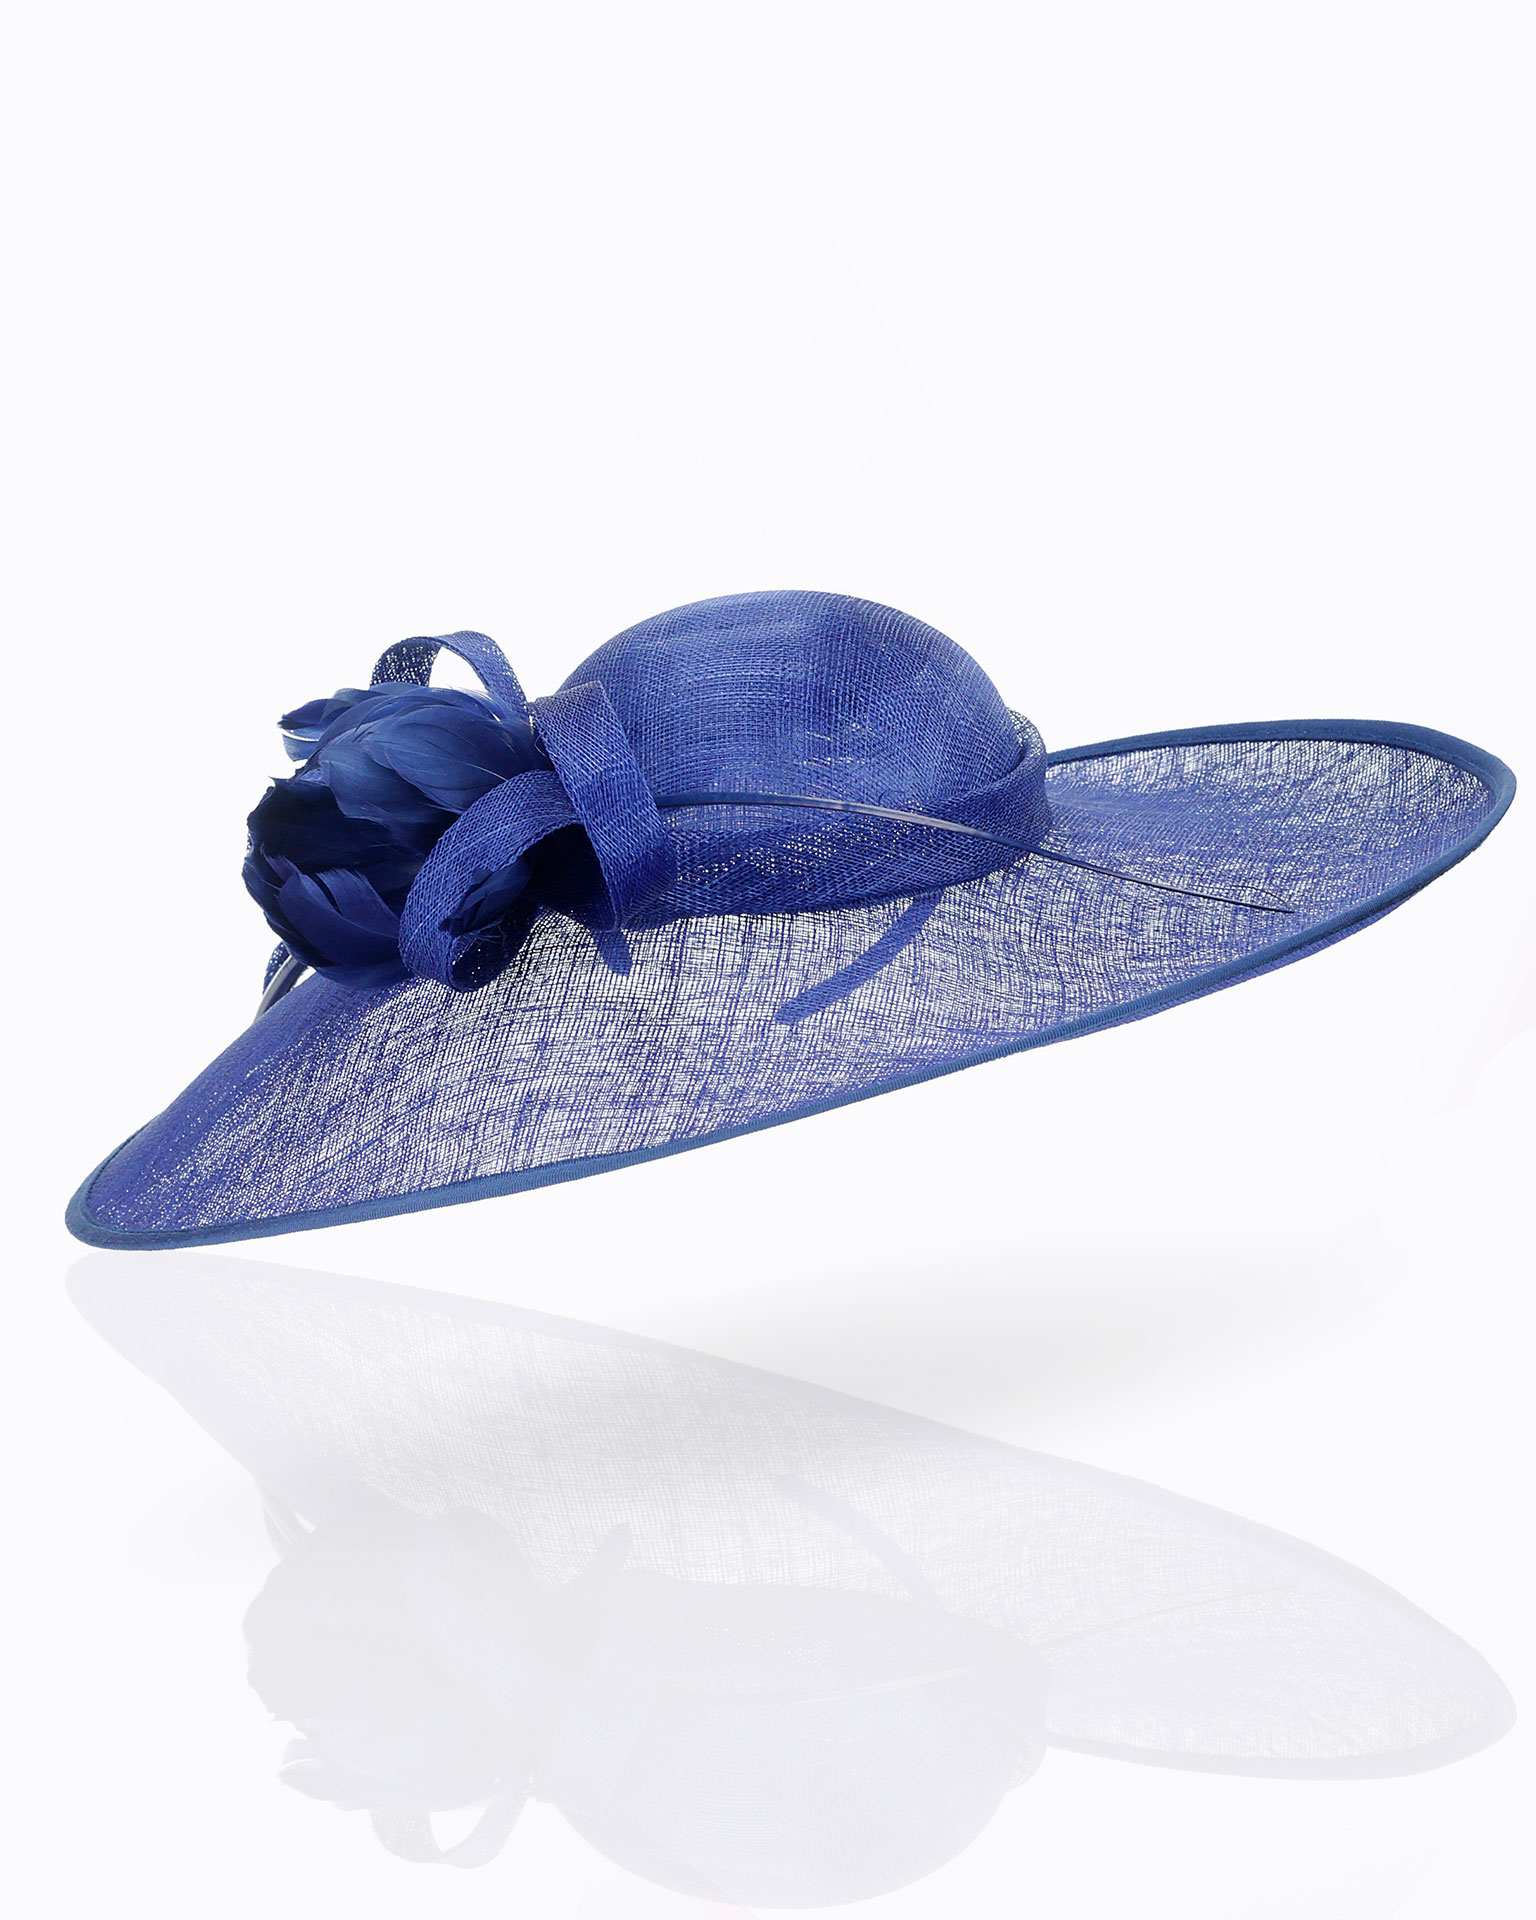 Wide-brimmed sinamay hat with bow. 2019 FIESTA AIRE BARCELONA Collection.